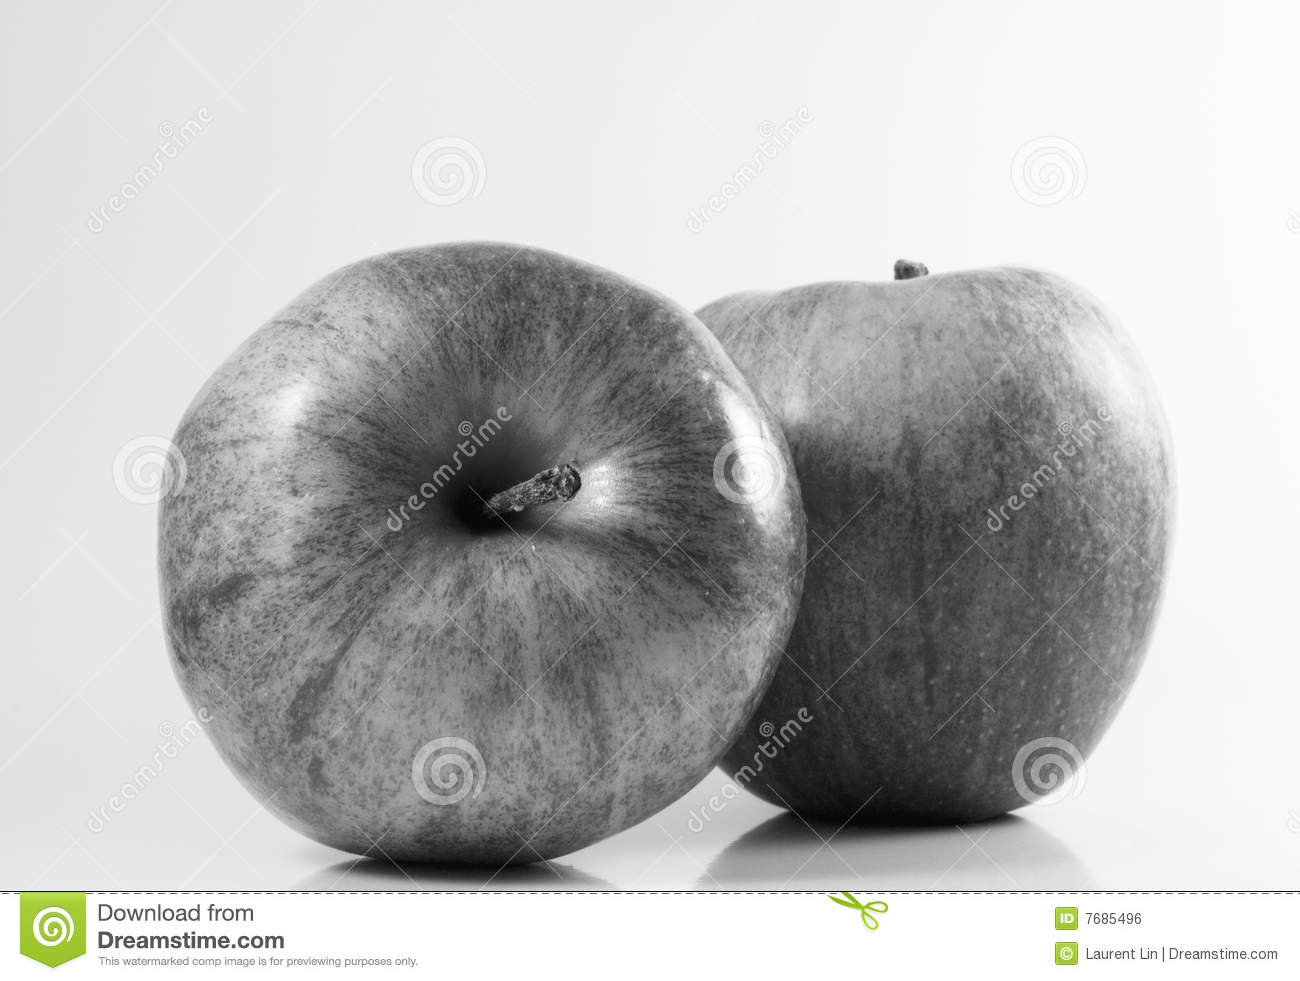 Abstract apple slices stock image image of apple repetitive 9765723 black white apple royalty free stock image thecheapjerseys Image collections